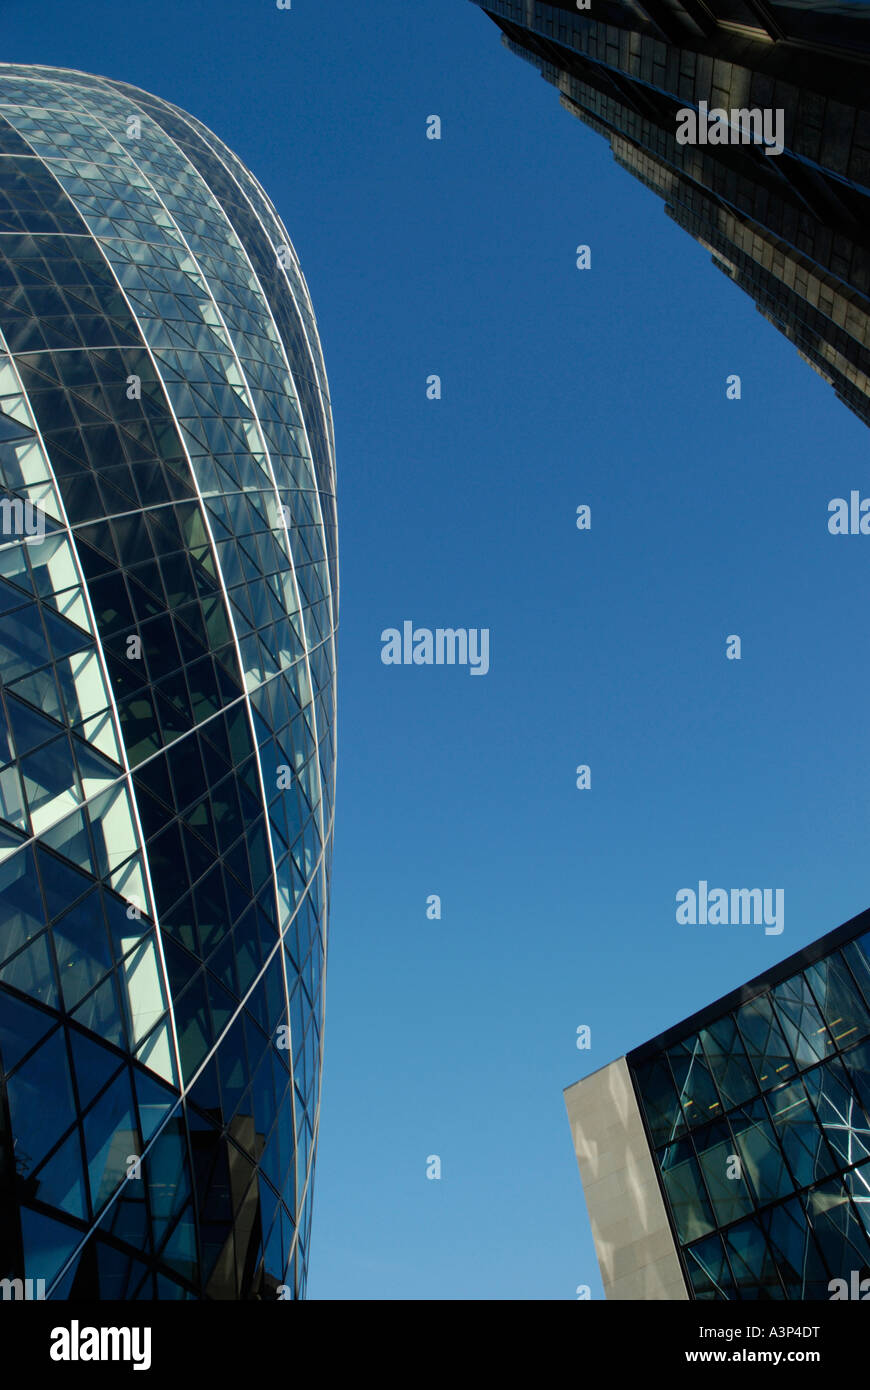 Abstract view of the Gherkin Swiss Re Tower and nearby office buildings shot from directly below London England - Stock Image